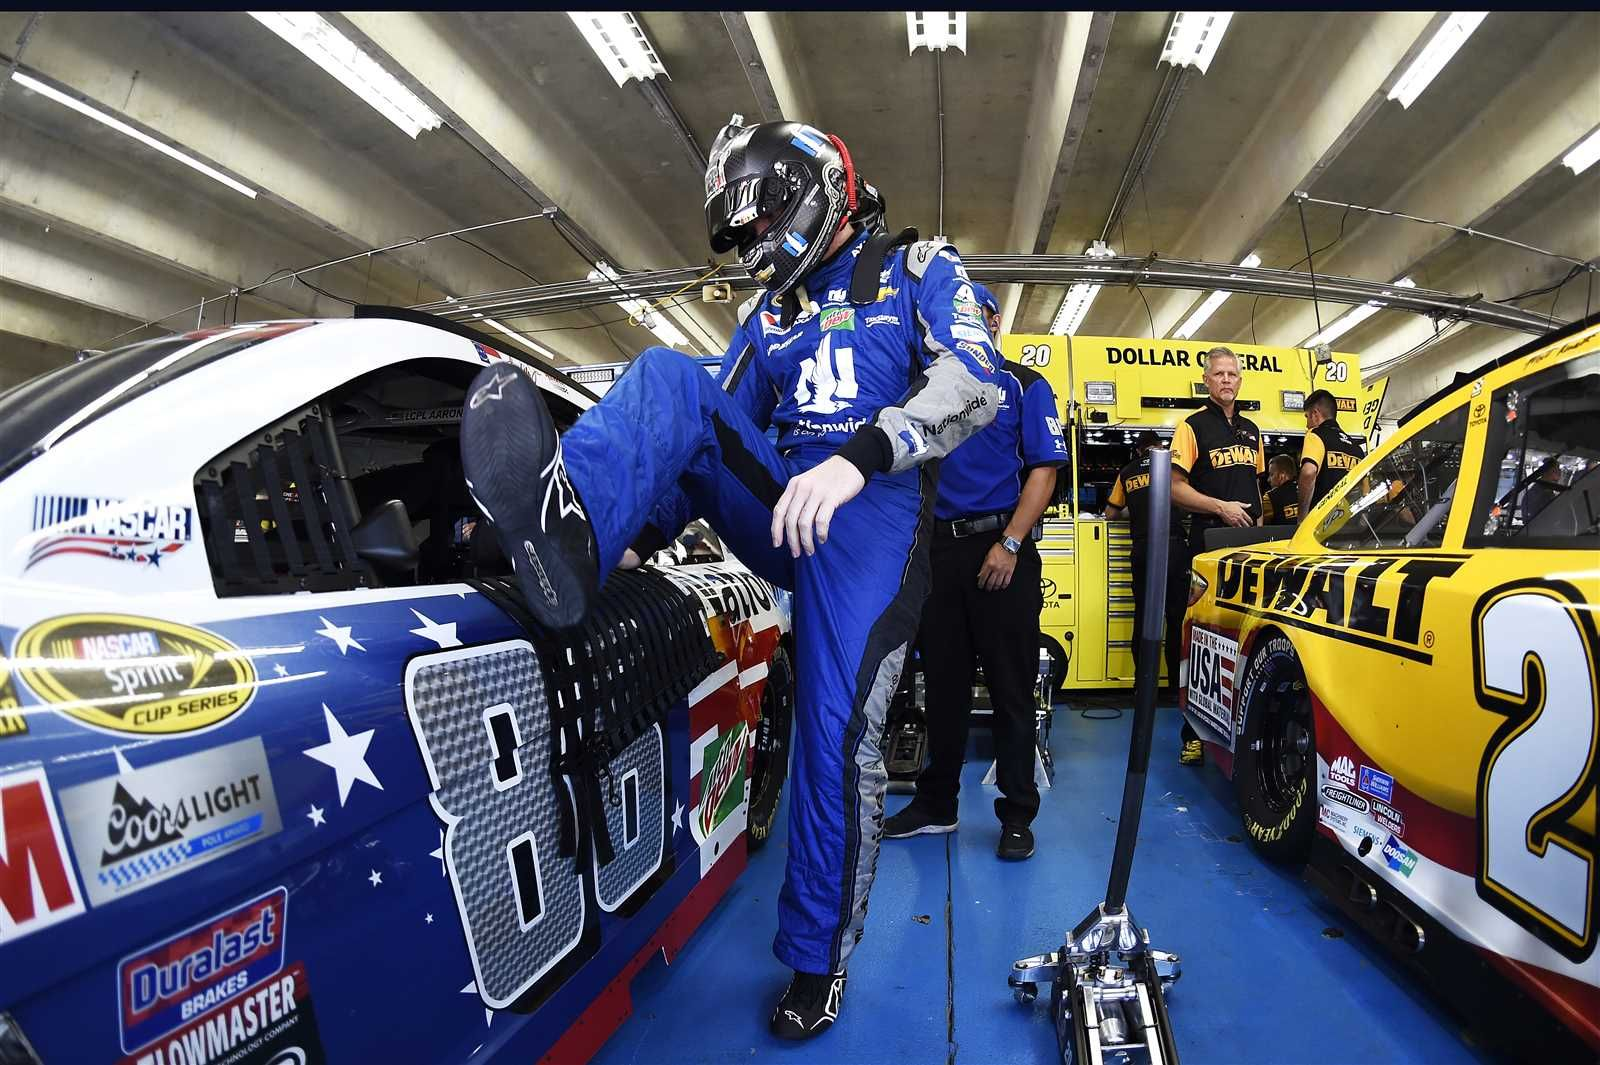 At-track photos: Saturday, Charlotte:    Saturday, May 28, 2016  -   CHARLOTTE, NC - MAY 28: Dale Earnhardt Jr., driver of the No. 88 Nationwide Chevrolet, steps into his car during practice for the NASCAR Sprint Cup Series Coca-Cola 600 at Charlotte Motor Speedway on May 28, 2016 in Charlotte, North Carolina.